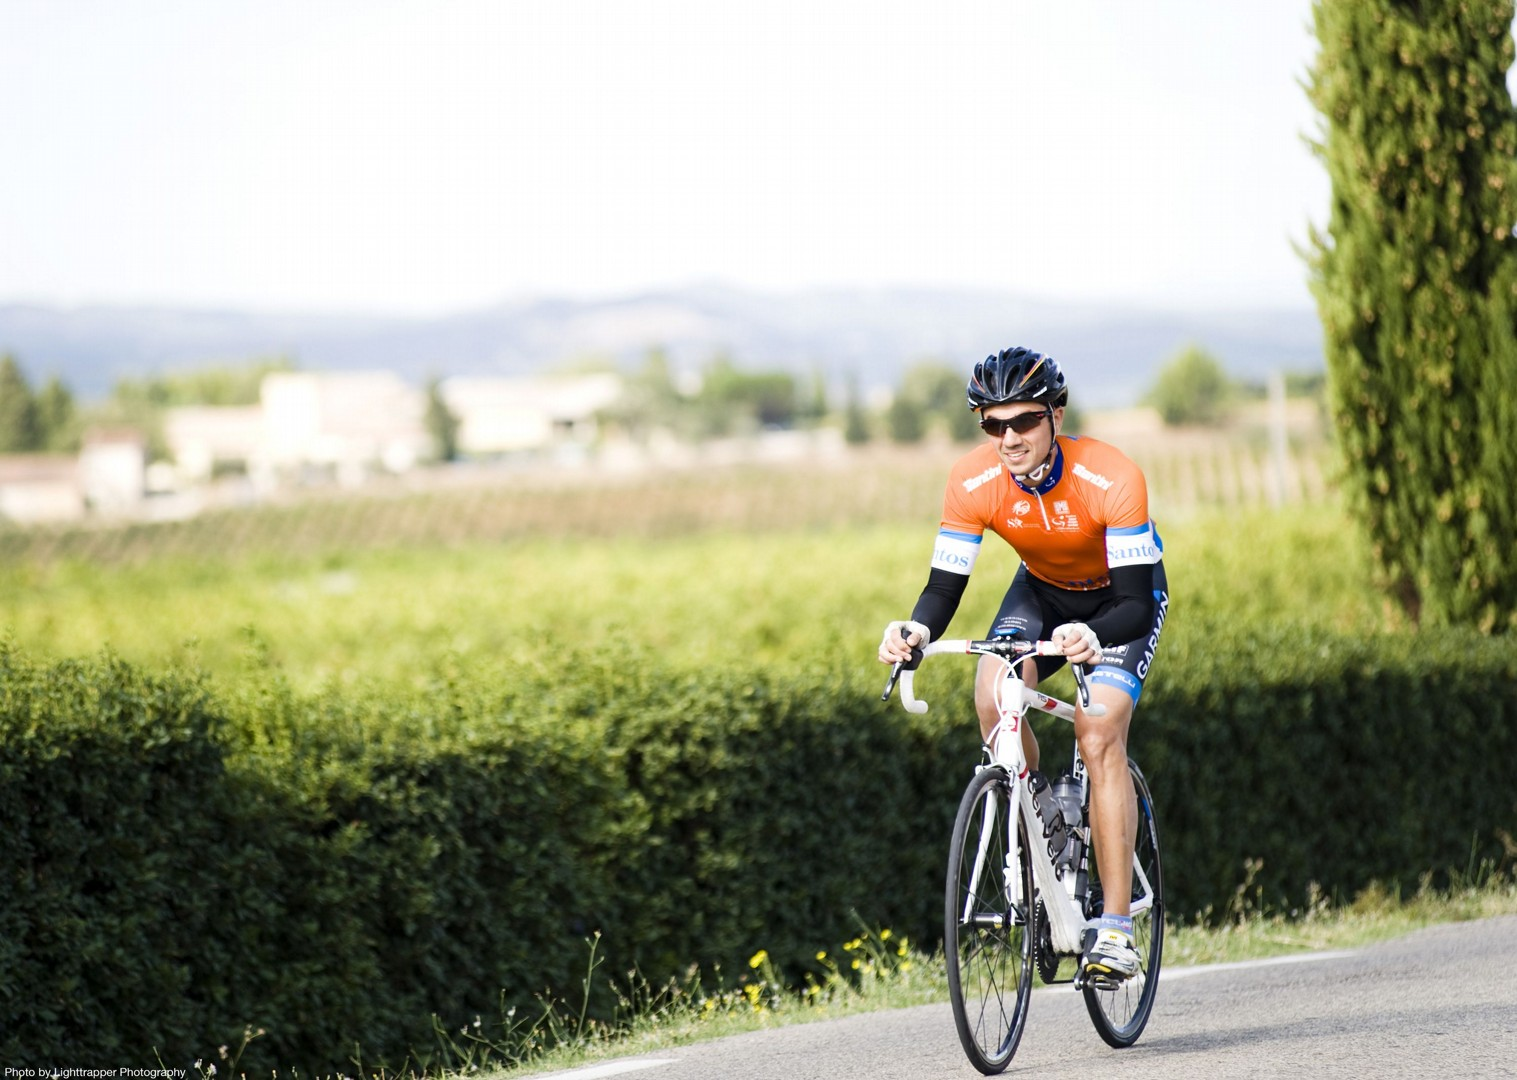 dordogne-belgium-and-france-guided-road-cycling-holiday.jpg - Belgium and France - Bruges to Bordeaux - Guided Road Cycling Holiday - Road Cycling